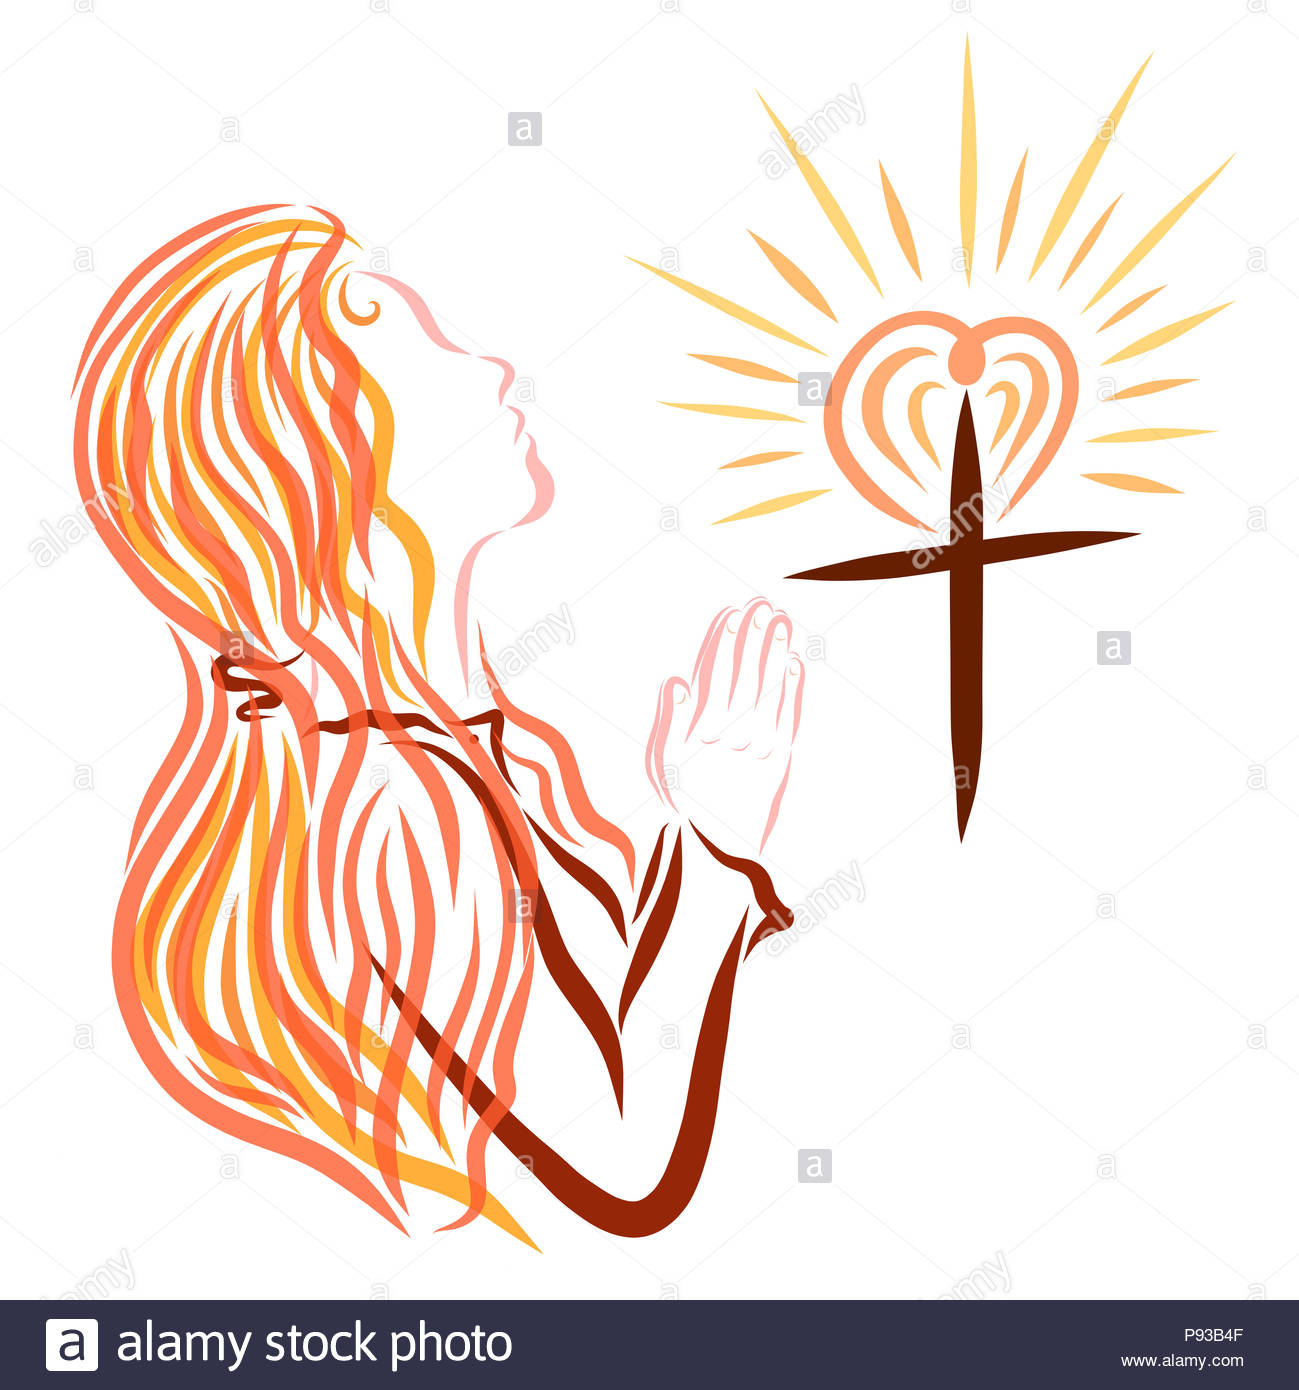 a shining cross with a heart and a praying woman with a headscarf on